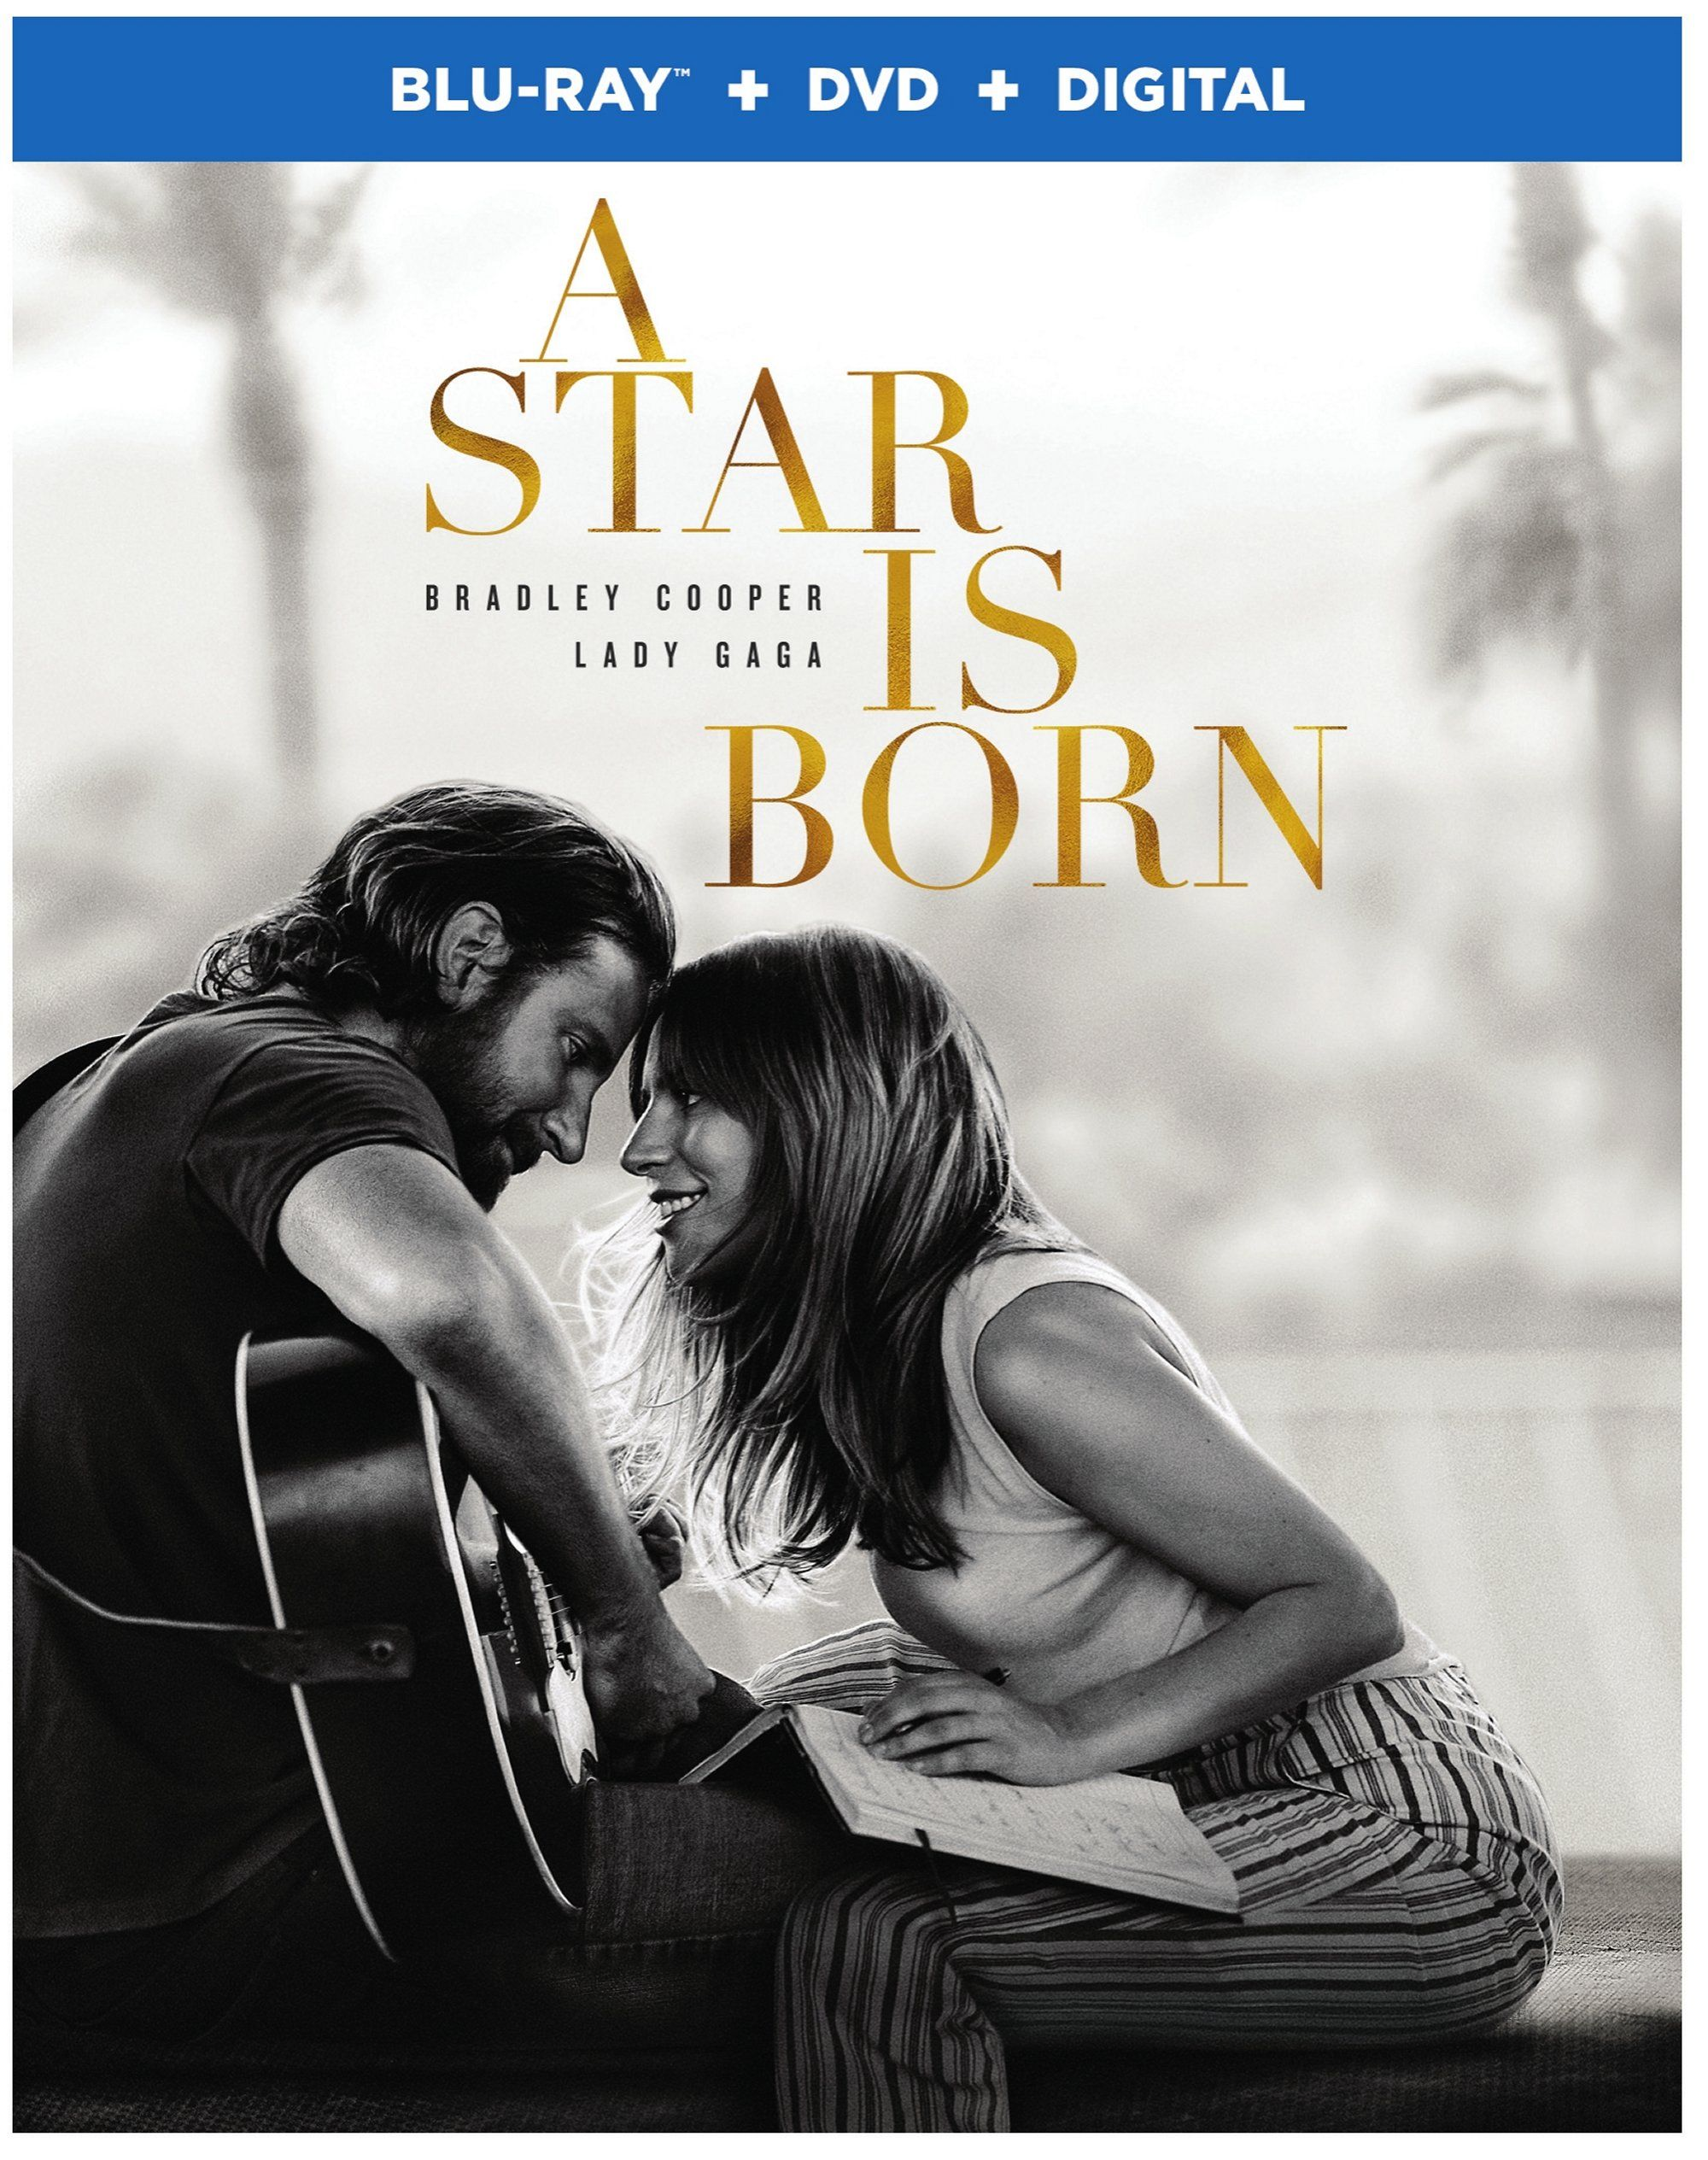 Bradley Cooper S Acting And Lady Gaga S Voice Are Why A Star Is